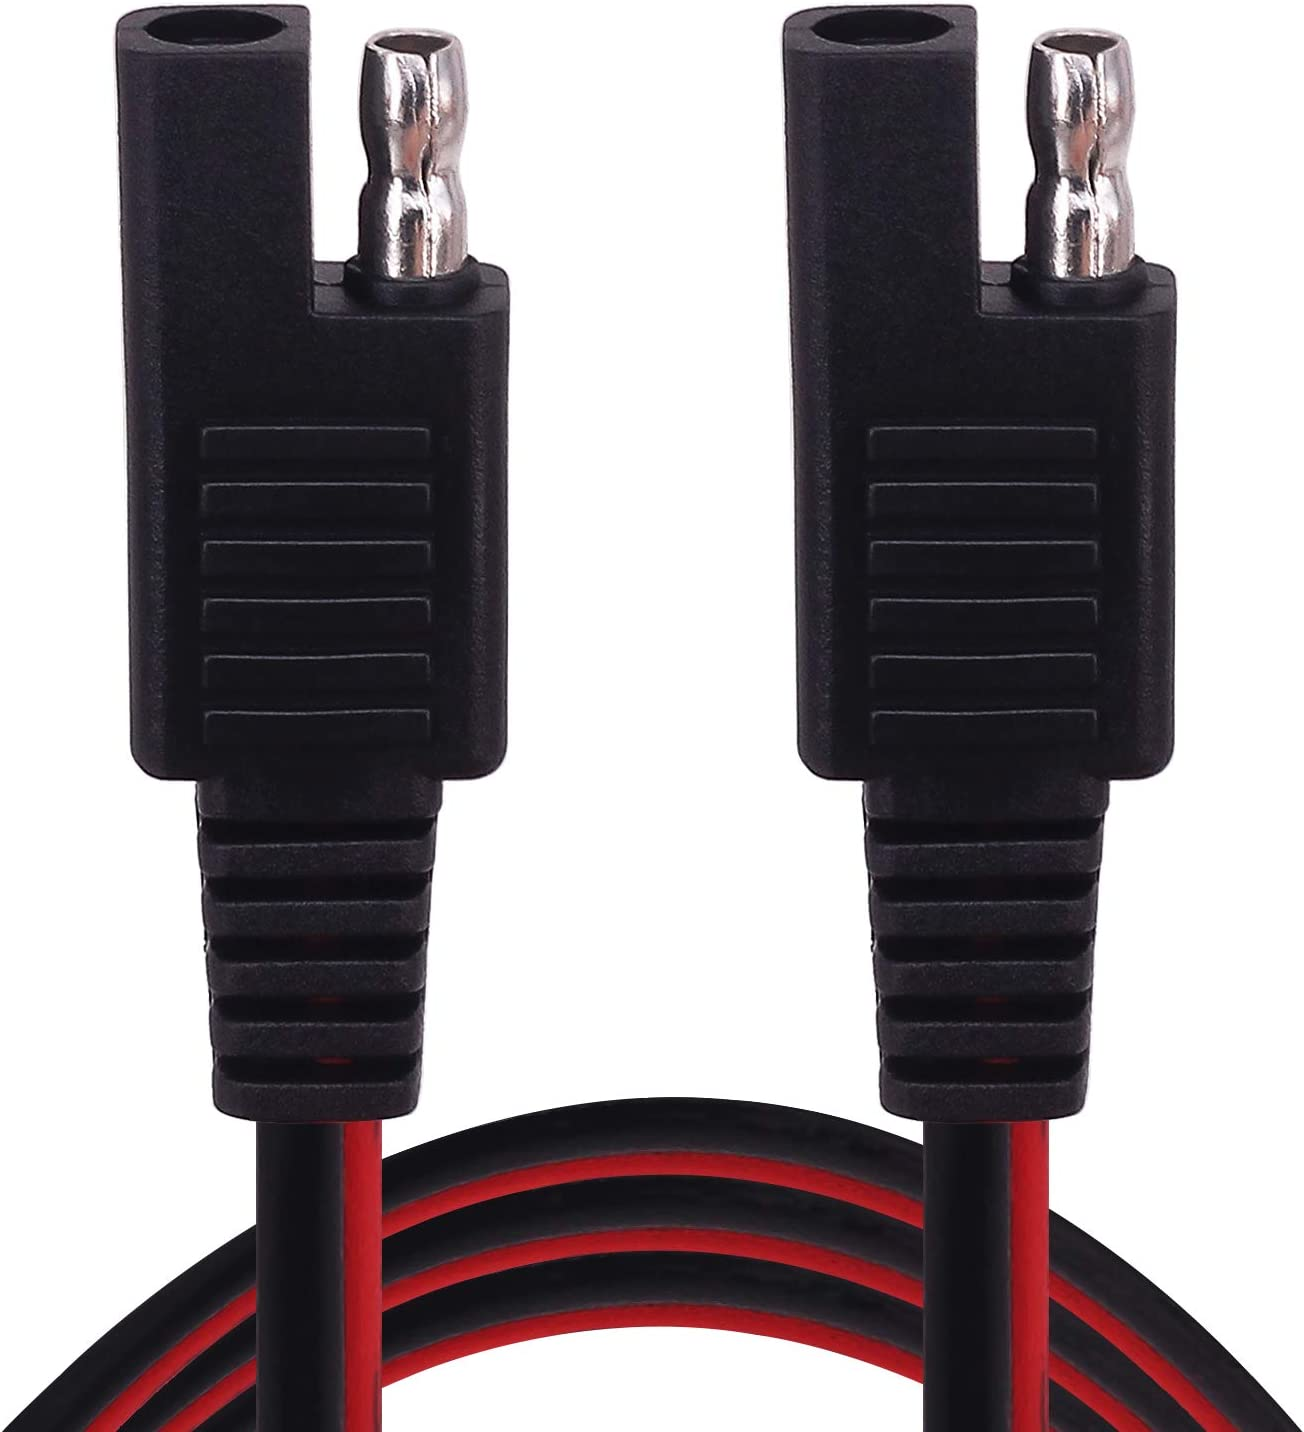 Alligator Clip to SAE 1m 1 Pack Yeebline Alligator Clip to SAE Connector Cable 3.2FT 12V Alligator Crocodile Clip Clamp to SAE 2 Pin Quick Disconnect Adapter Connector Charging Extension Cord